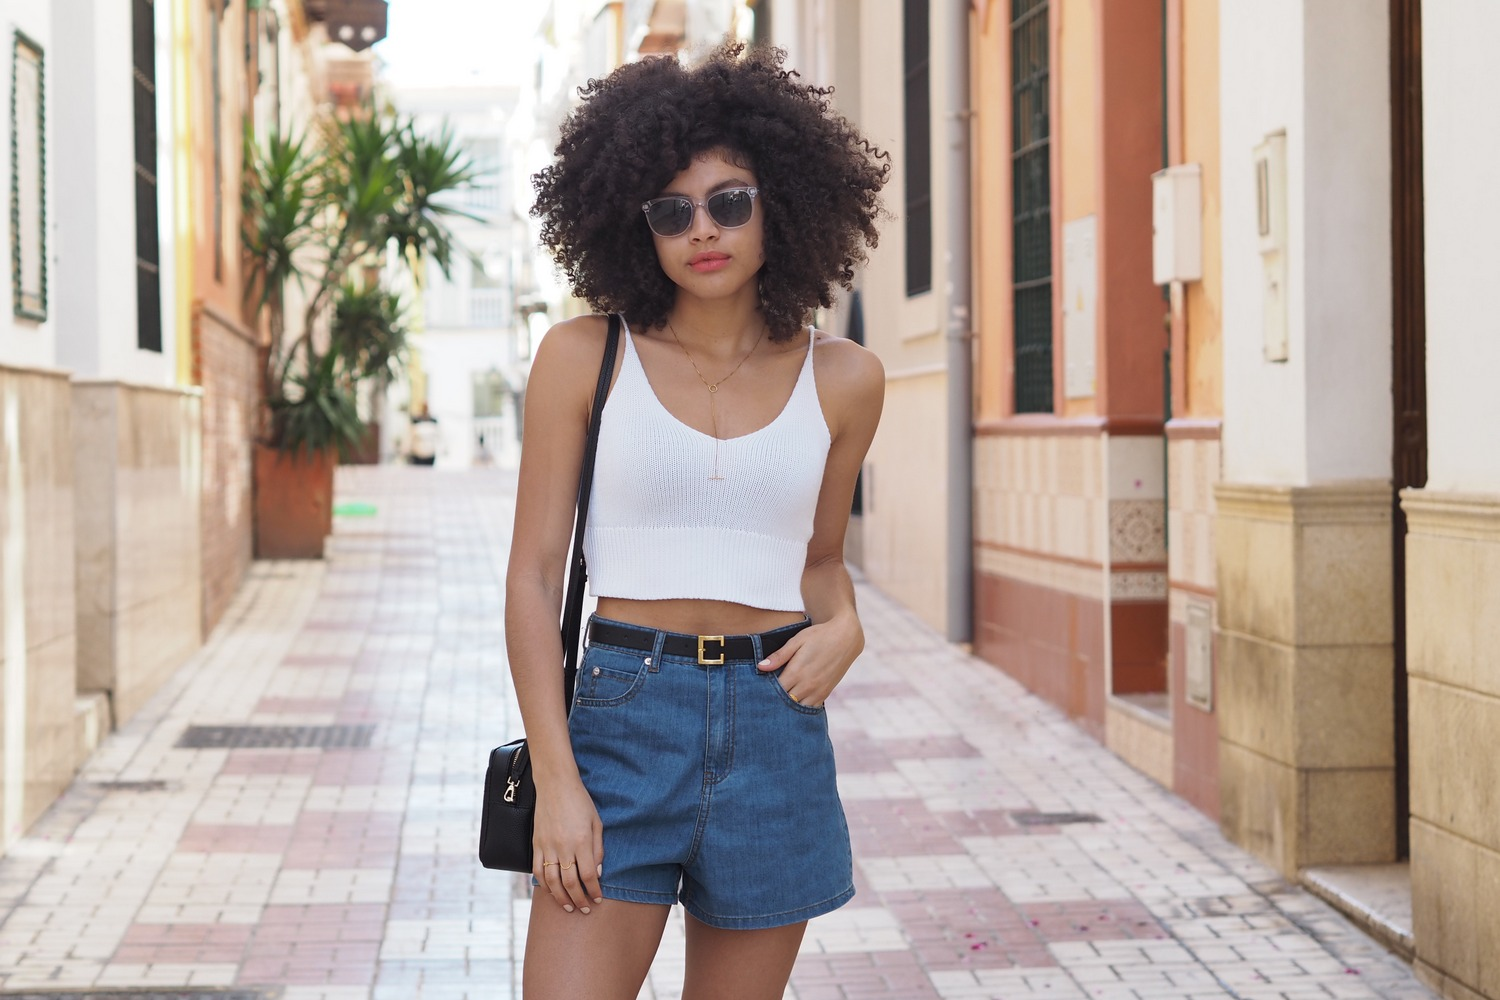 Samio style blogger denim shorts and crop top summer holiday look